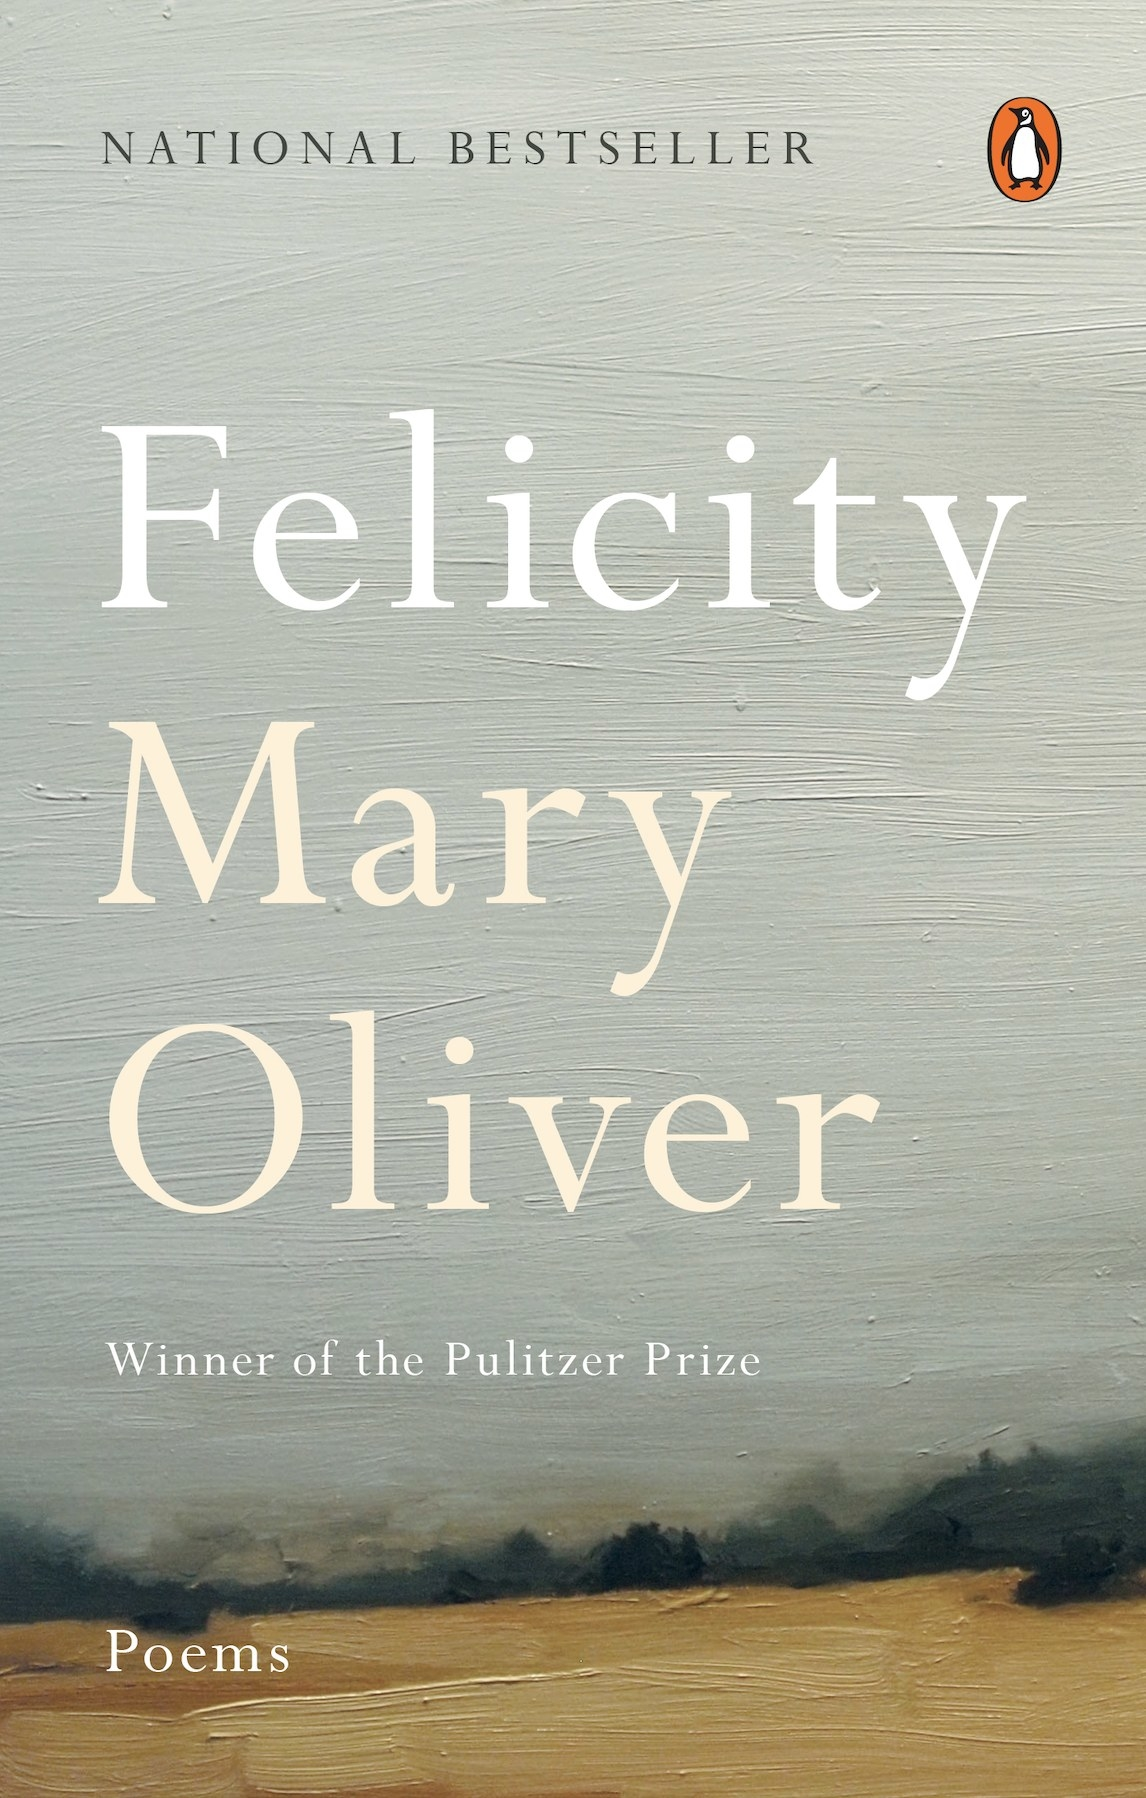 National Bestseller Felicity: Poems by Mary Oliver Winner of the Pulitzer Prize